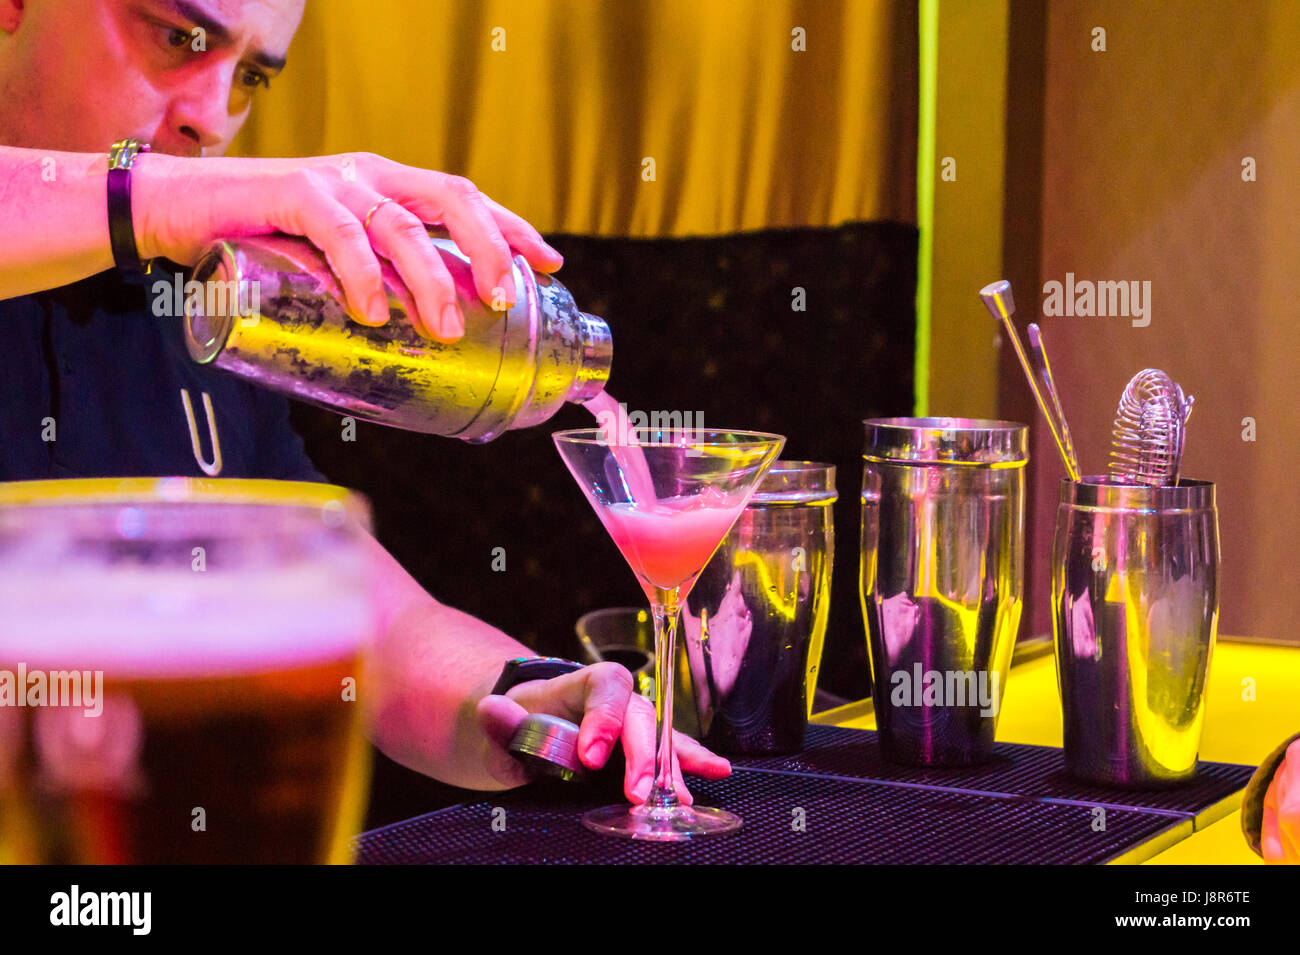 Barman pouring a Cosmopolitan cocktail at Urban Cocktail Club bar, Oviedo Asturias Spain Stock Photo